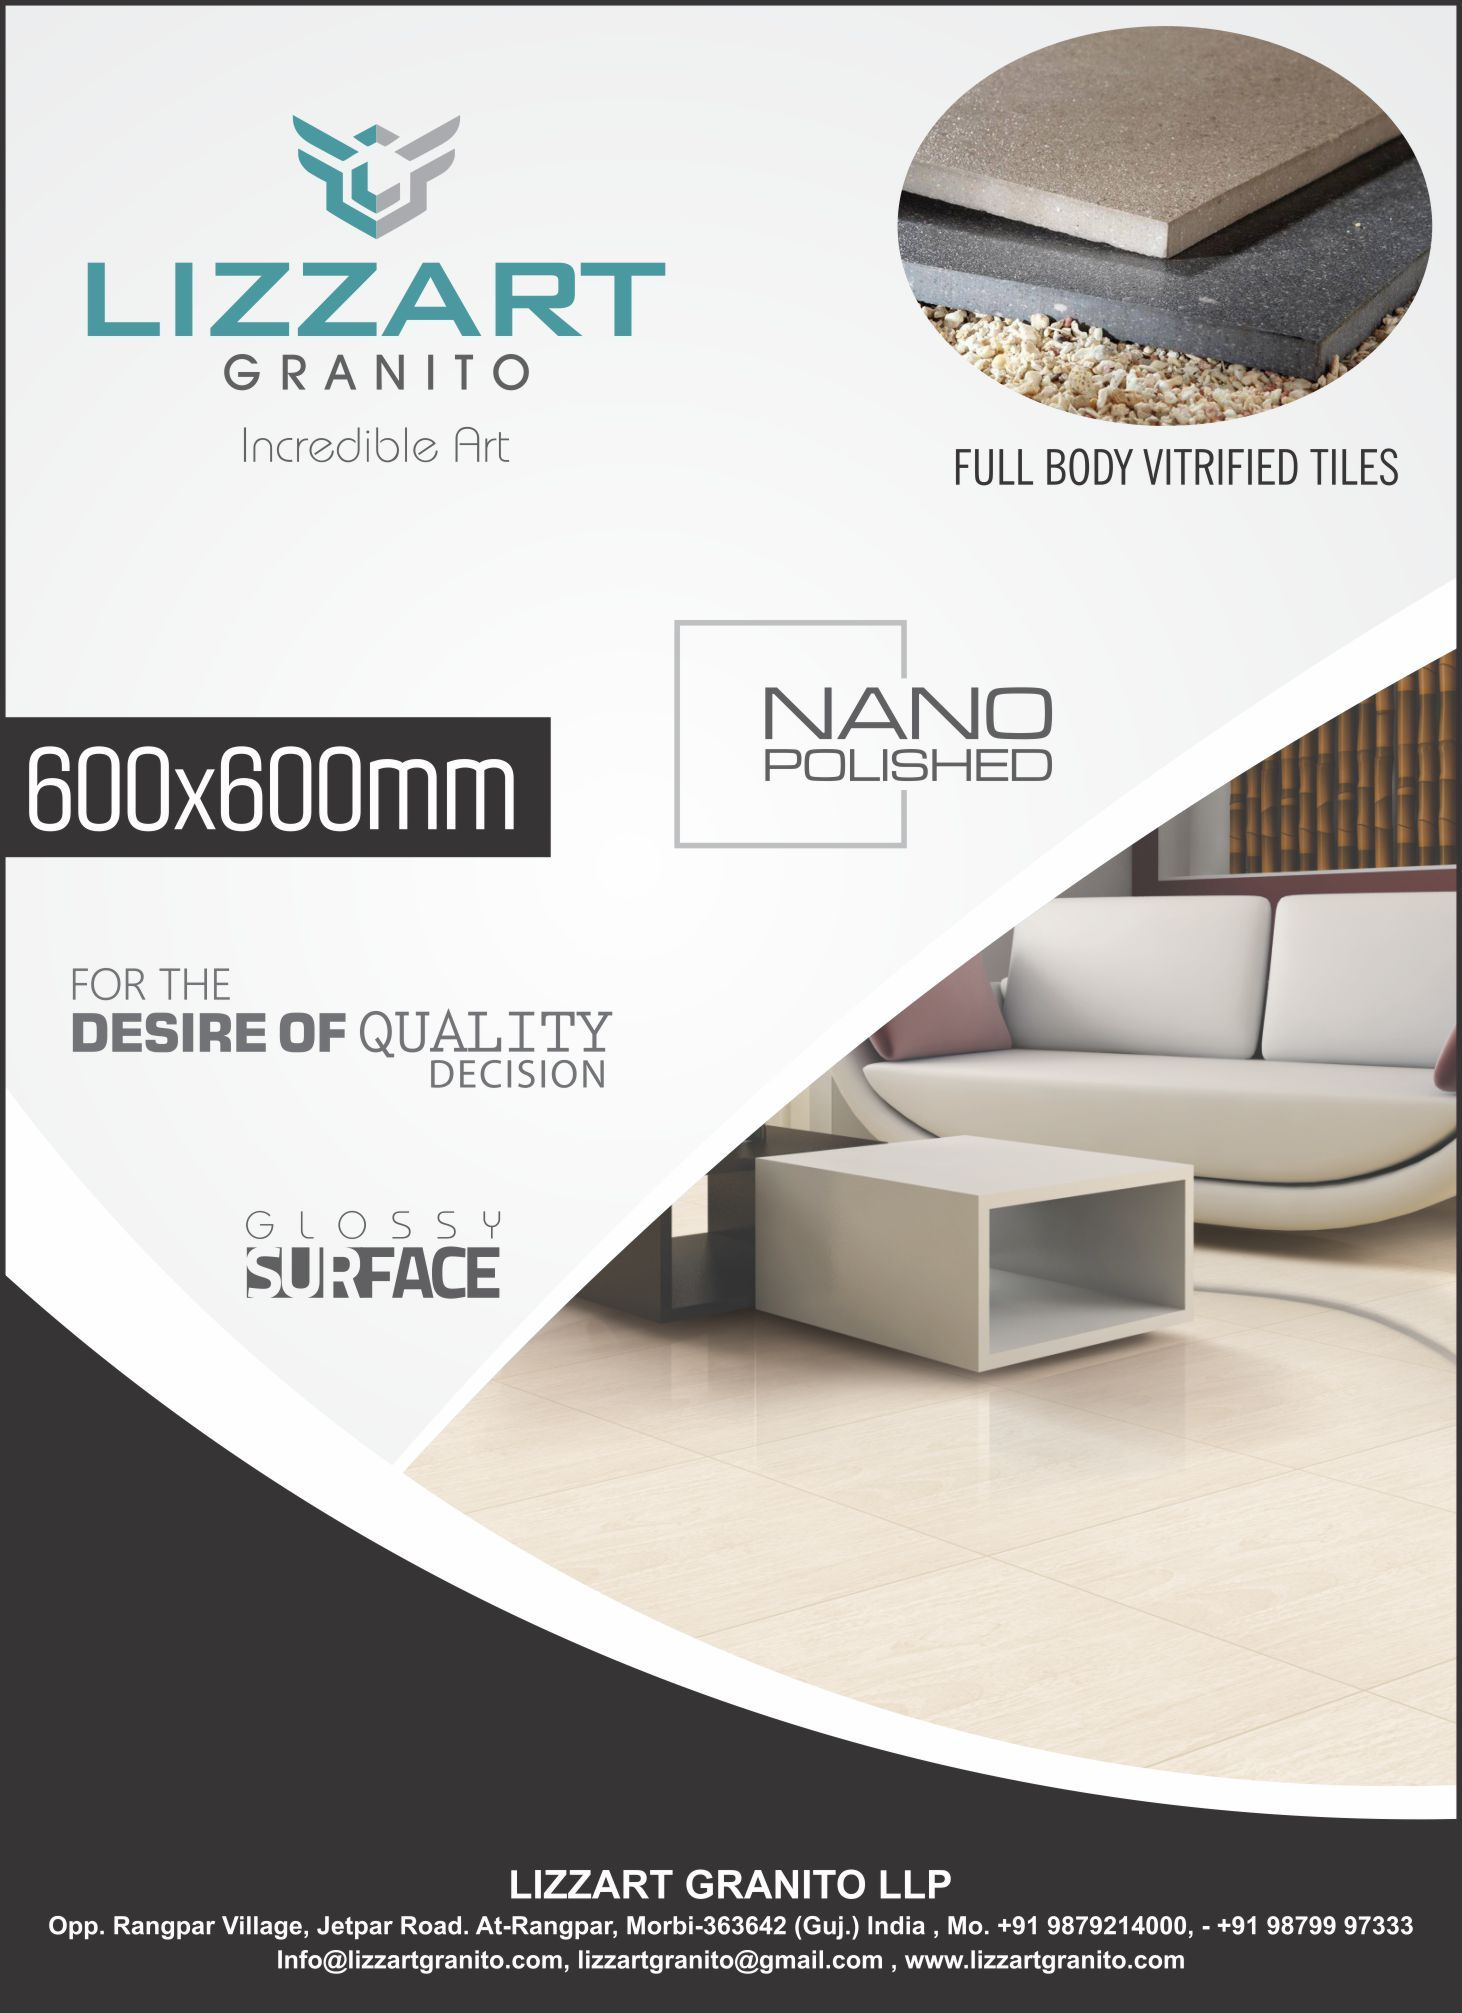 Gujarat Tiles Nano Vitrified Tiles In 2020 Vitrified Tiles Ceramic Floor Tiles Tiles Price